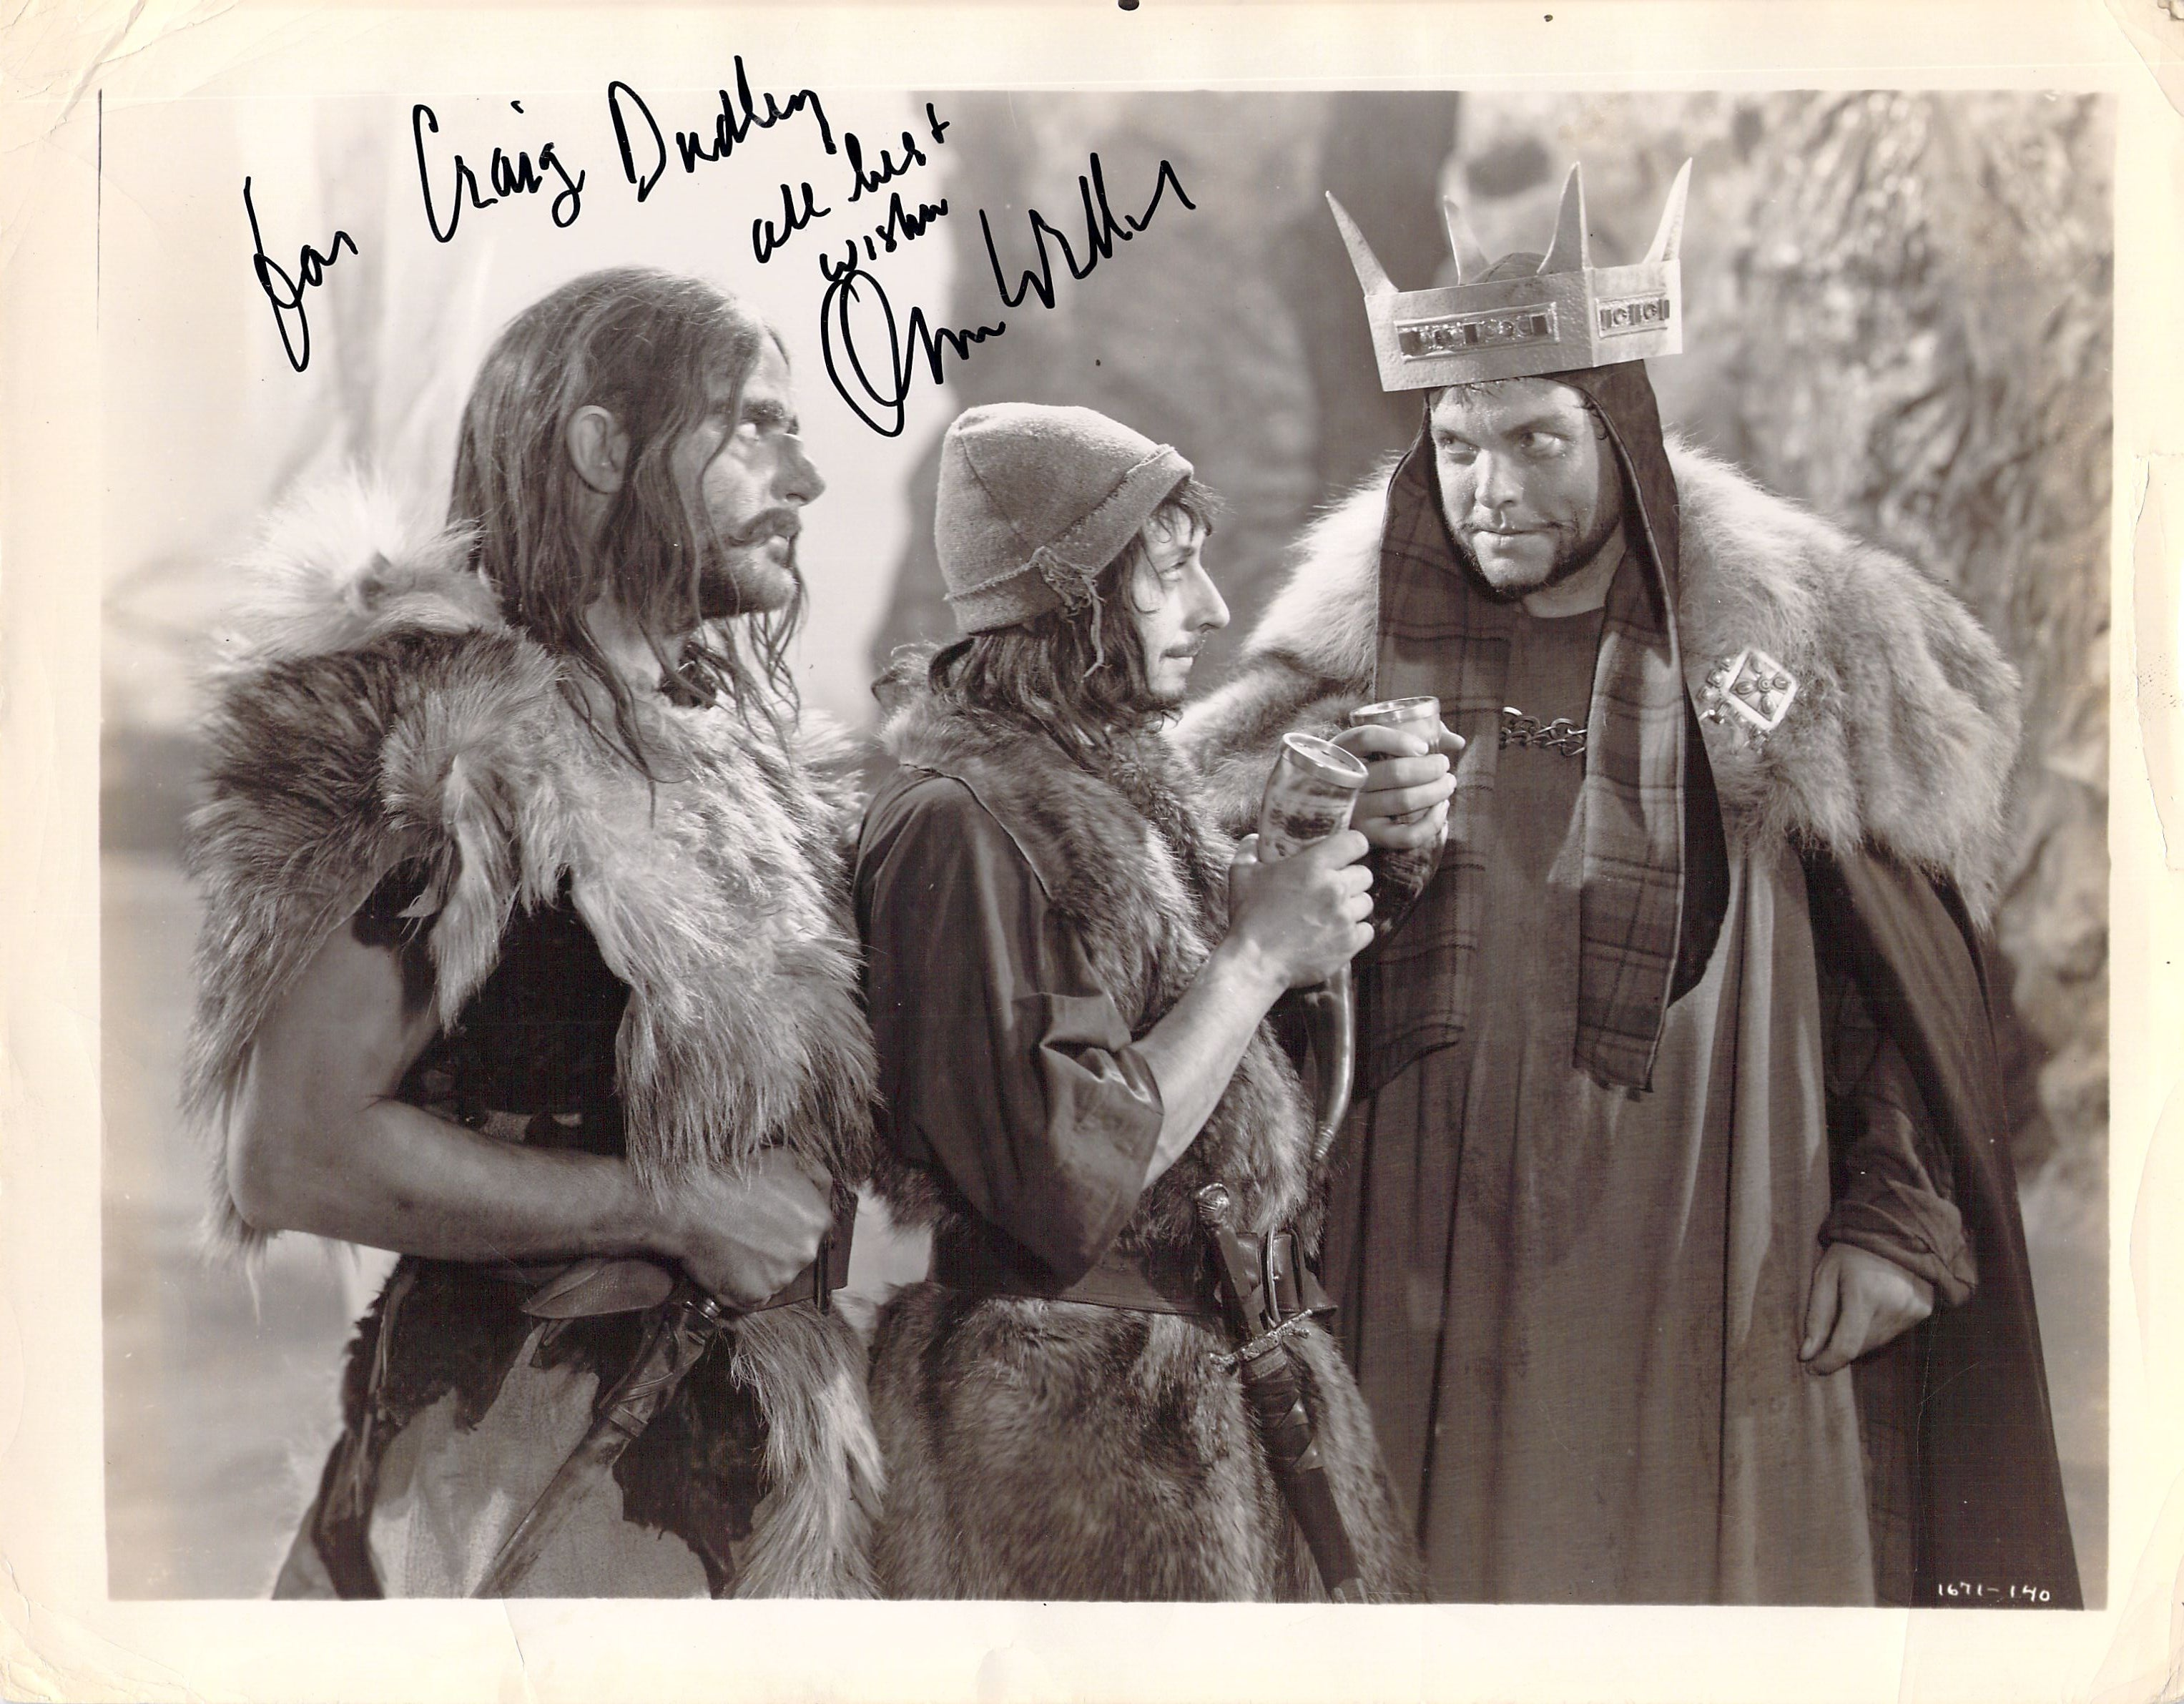 Orson Welles signed photo in Macbeth